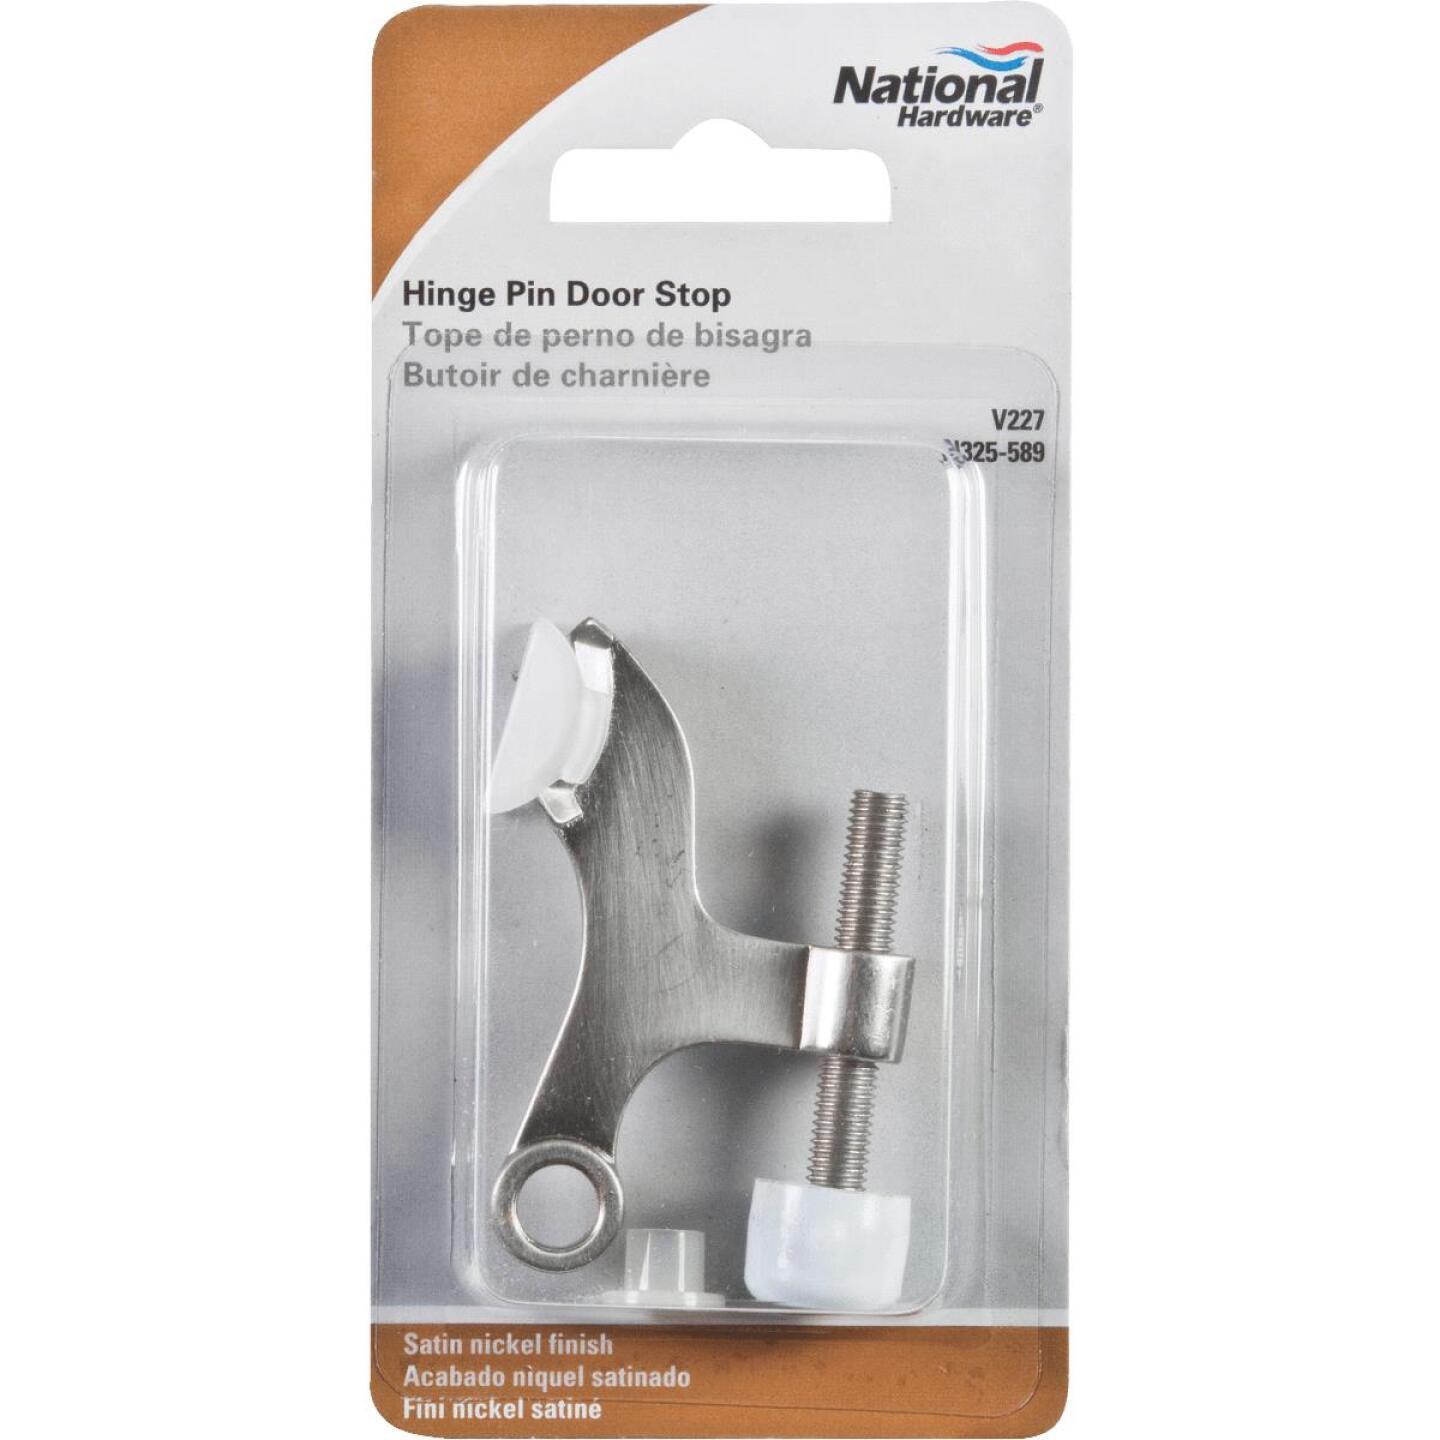 National Gallery Series Satin Nickel Hinge Pin Door Stop Image 2